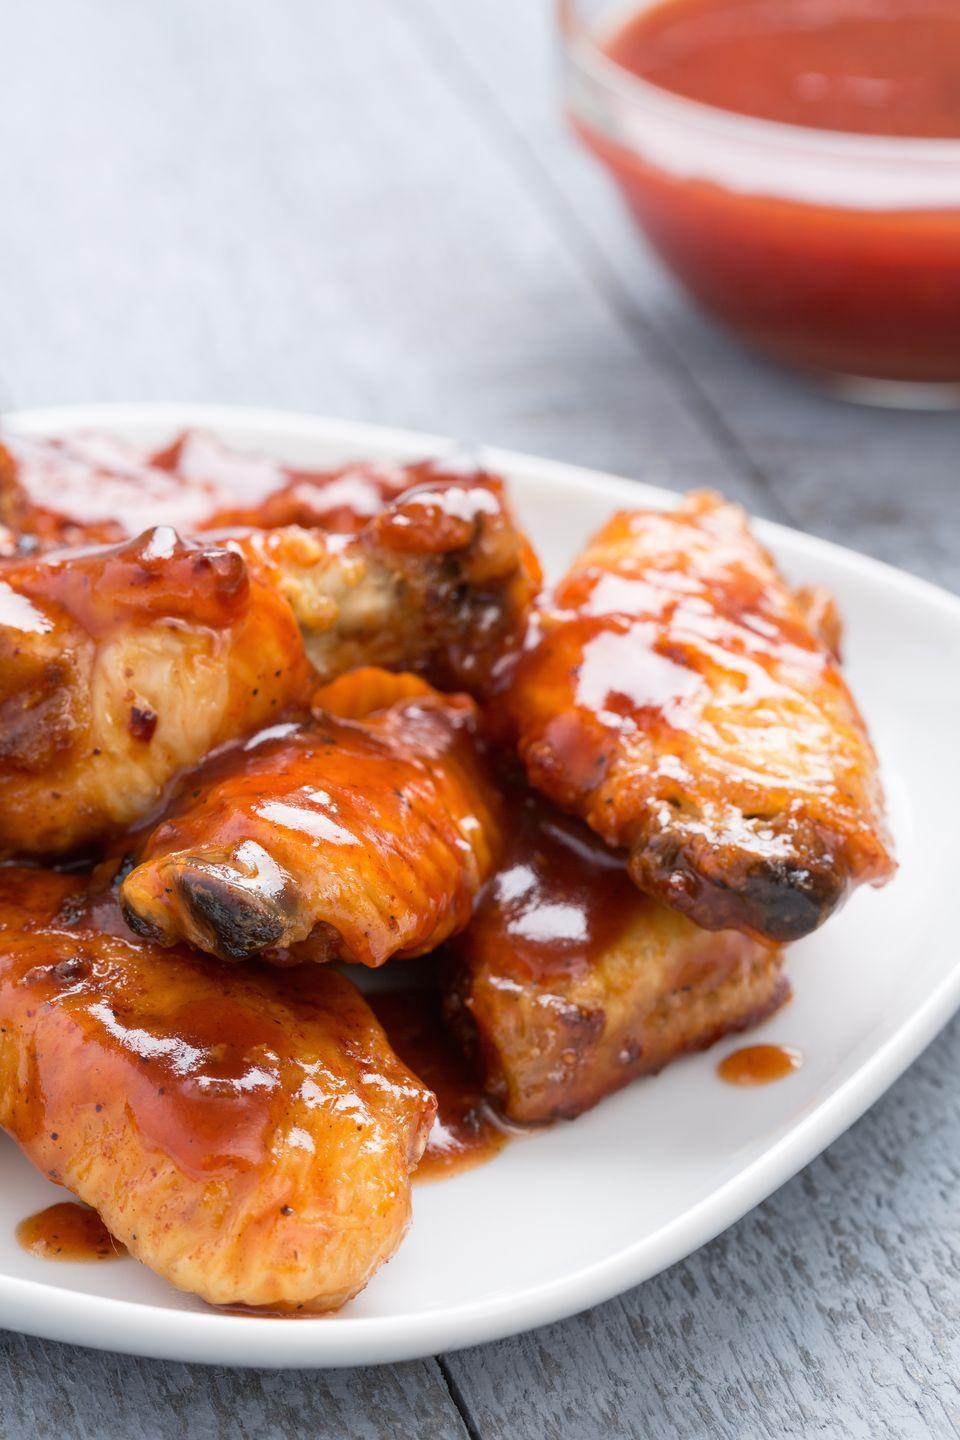 """<p><span>Set it and forget it.</span></p><p><span>Get the recipe from </span><a href=""""/cooking/recipe-ideas/recipes/a44369/slow-cooker-barbecue-bourbon-chicken-wings-recipe/"""" data-ylk=""""slk:Delish"""" class=""""link rapid-noclick-resp"""">Delish</a><span>.</span></p>"""